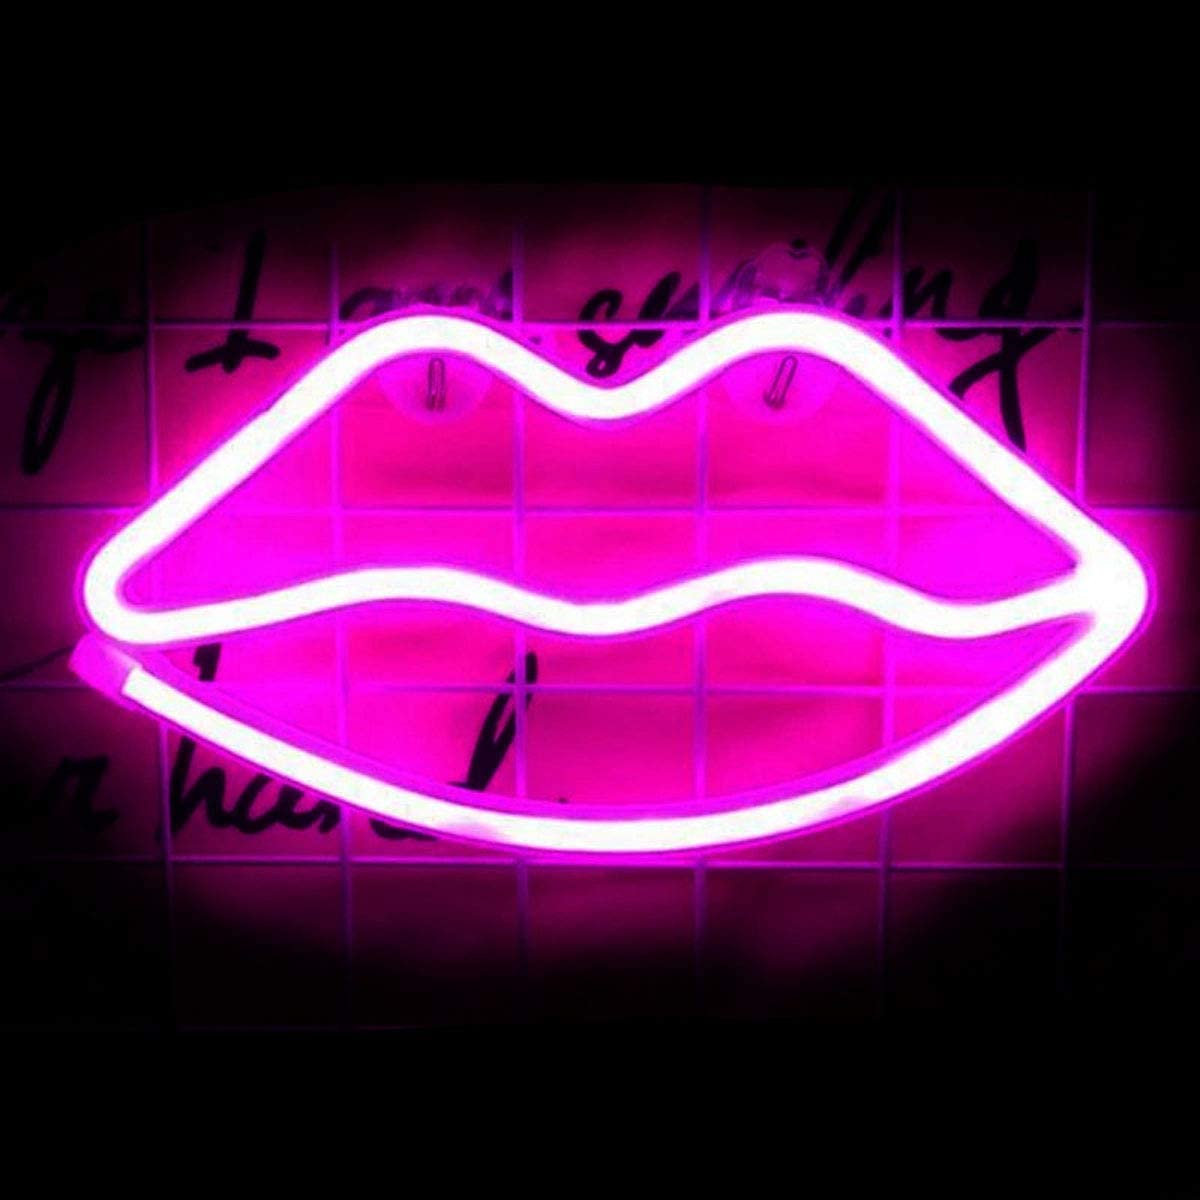 LED Neon Signs Lip Shaped Art Decorative Lights for Home Party Bar Pub Hotel Beach Recreational, Valentine's Day, Christmas (Lip-Pink)